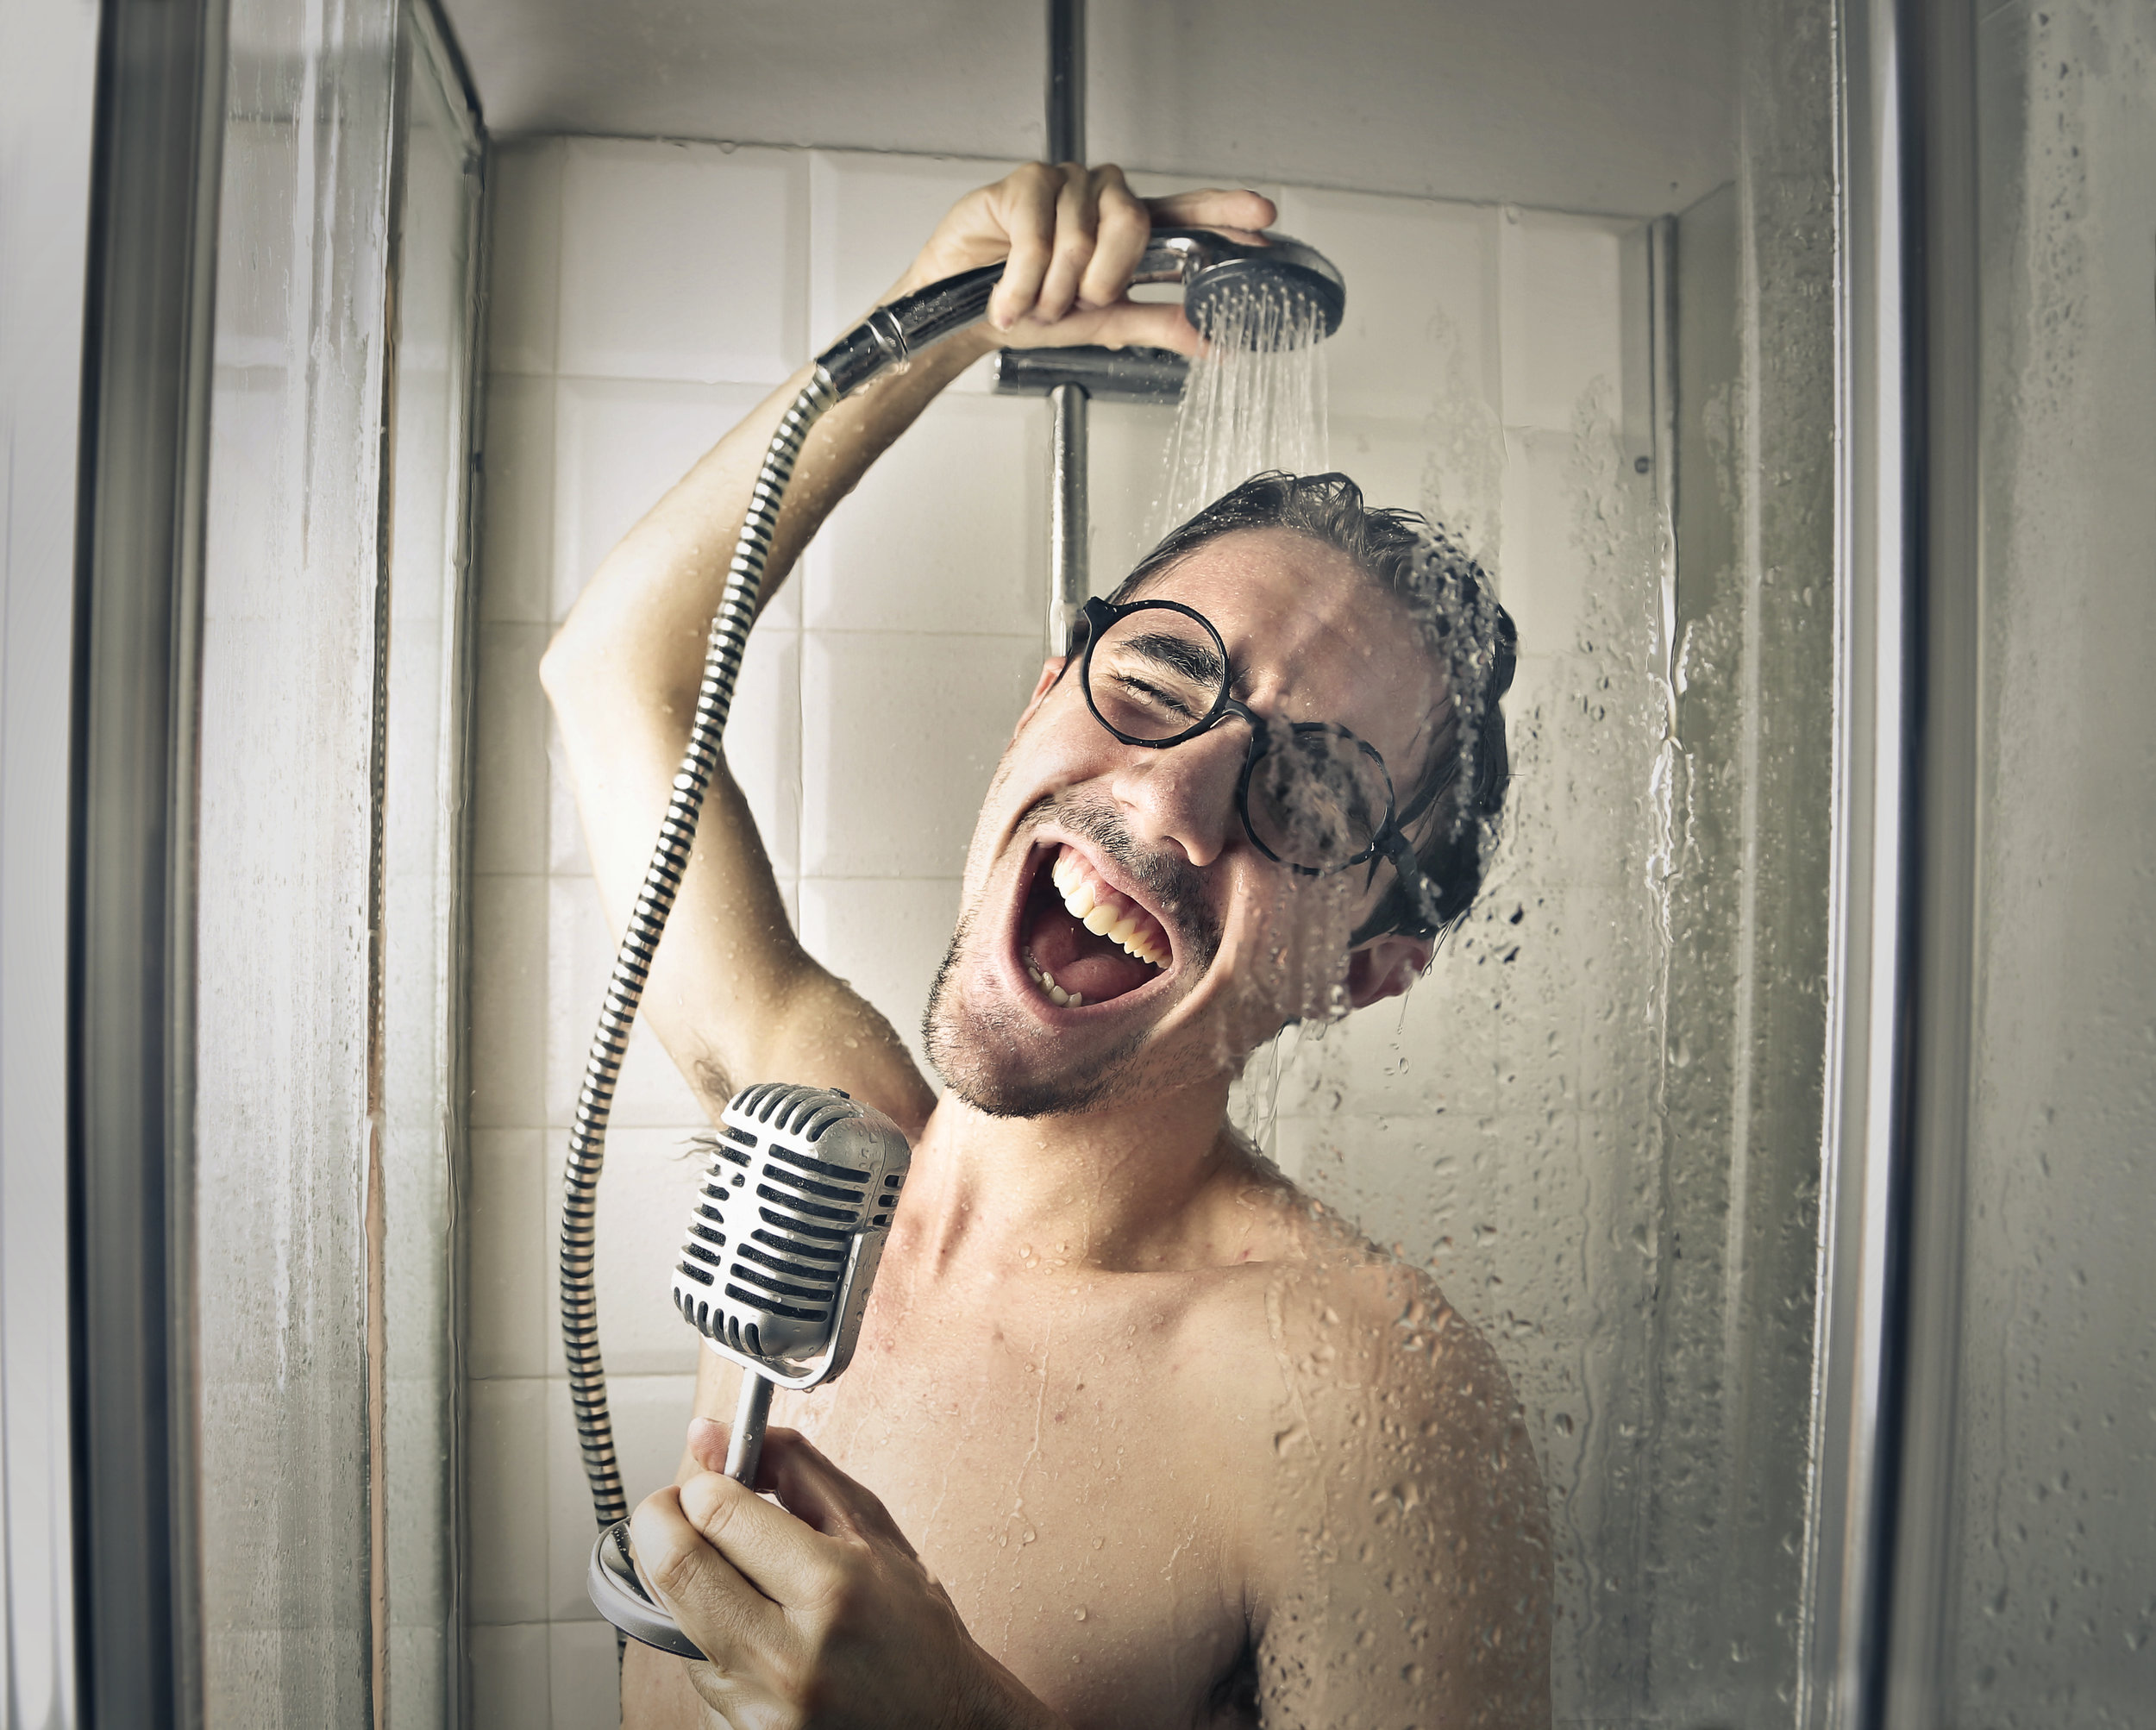 why-conserve-five-minute-shower-man-sing